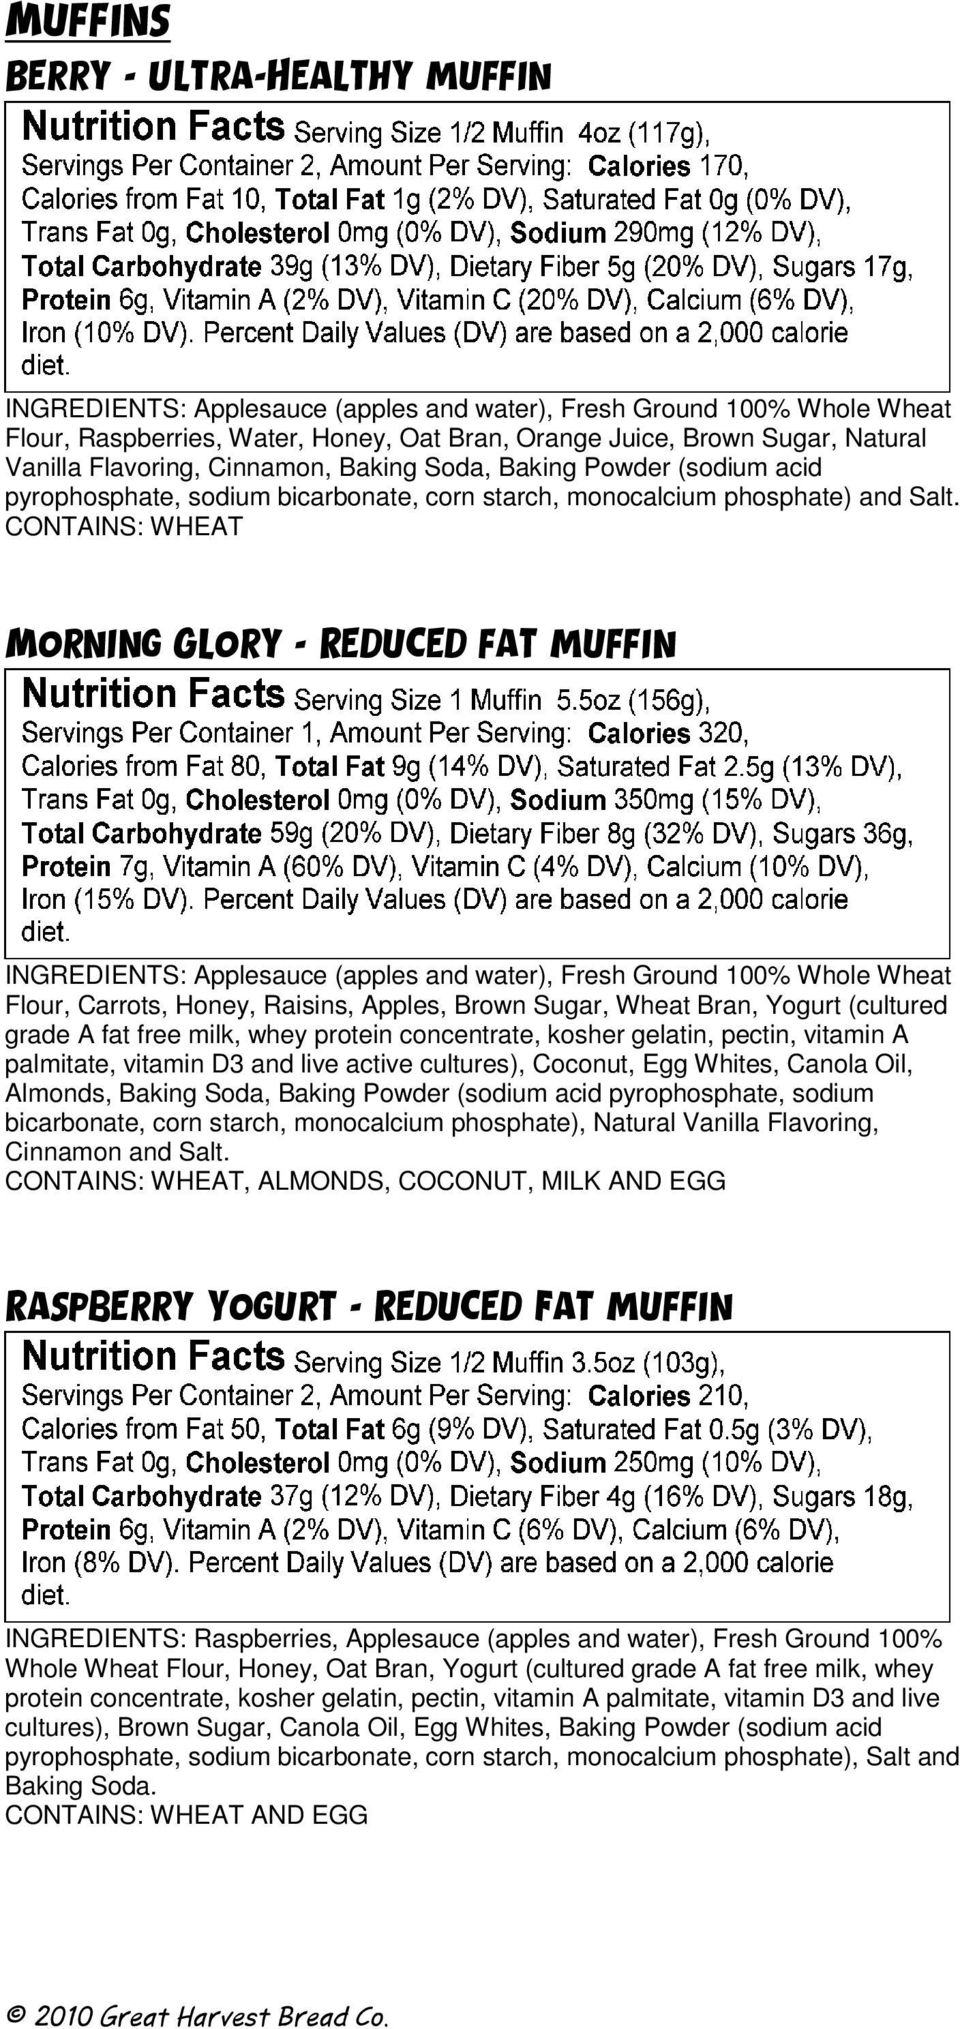 CONTAINS: WHEAT Morning Glory - Reduced fat muffin INGREDIENTS: Applesauce (apples and water), Fresh Ground 100% Whole Wheat Flour, Carrots, Honey, Raisins, Apples, Brown Sugar, Wheat Bran, Yogurt